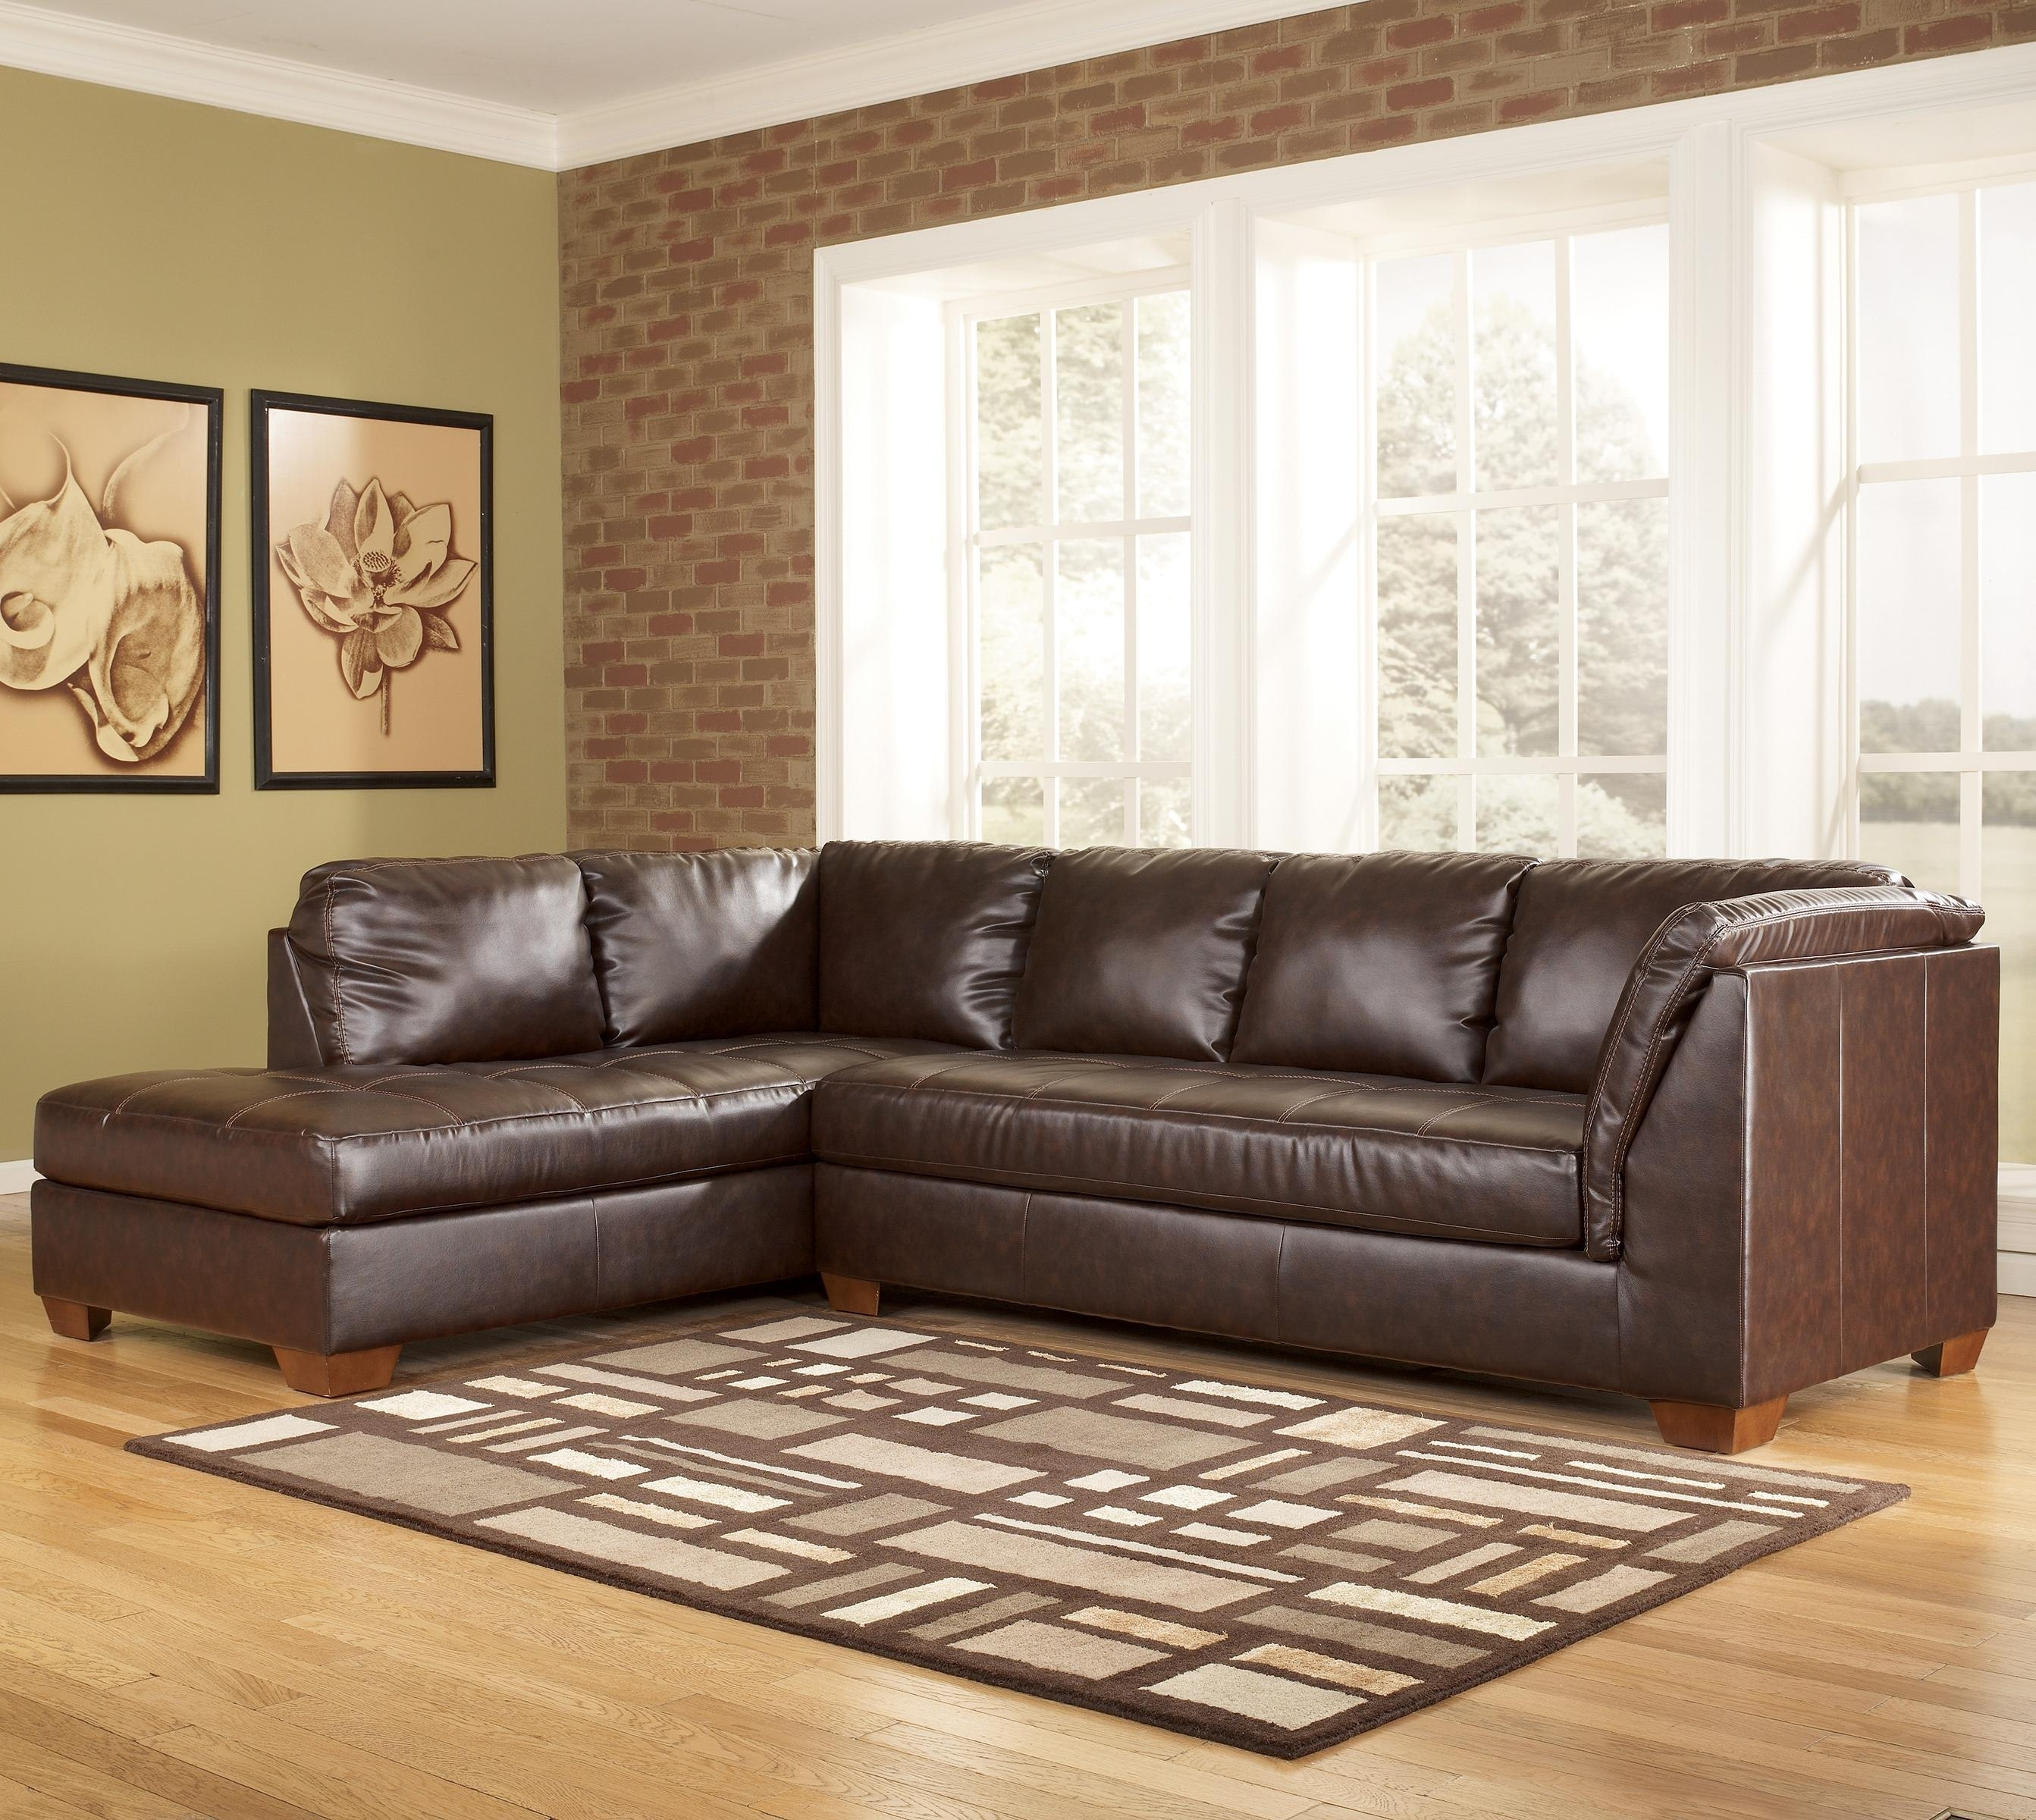 Signature Designashley Fairplay Durablend® Contemporary Intended For Clarksville Tn Sectional Sofas (View 6 of 10)